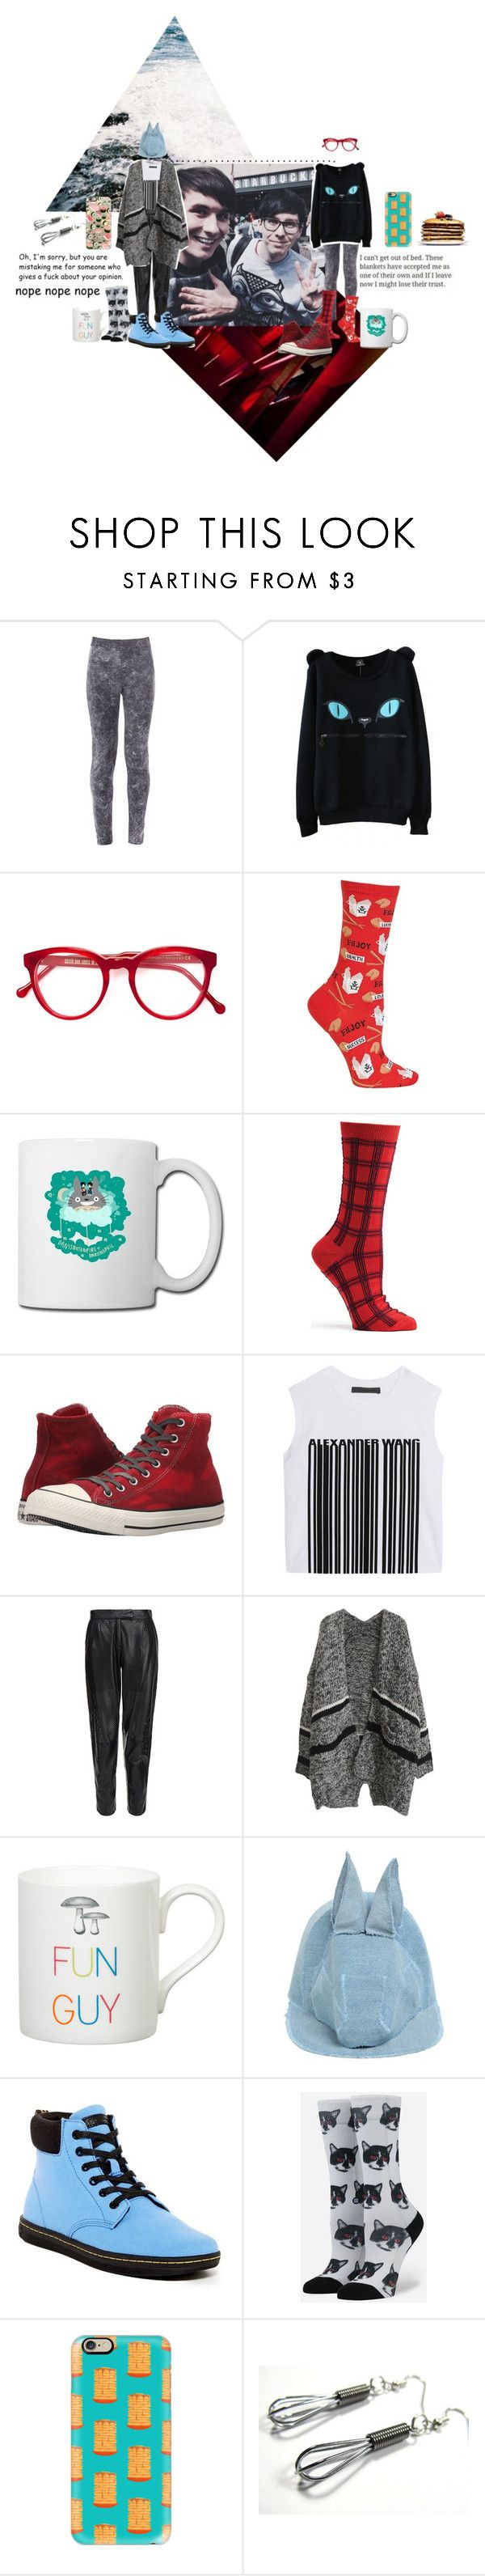 """""""% SIMPLE PHAN"""" by starkindustrees ❤ liked on Polyvore featuring Maiocci, WithChic, Cutler and Gross, HOT SOX, Ozone, Converse, Alexander Wang, MuuBaa, Gary Birks Design and Francesco Ballestrazzi"""